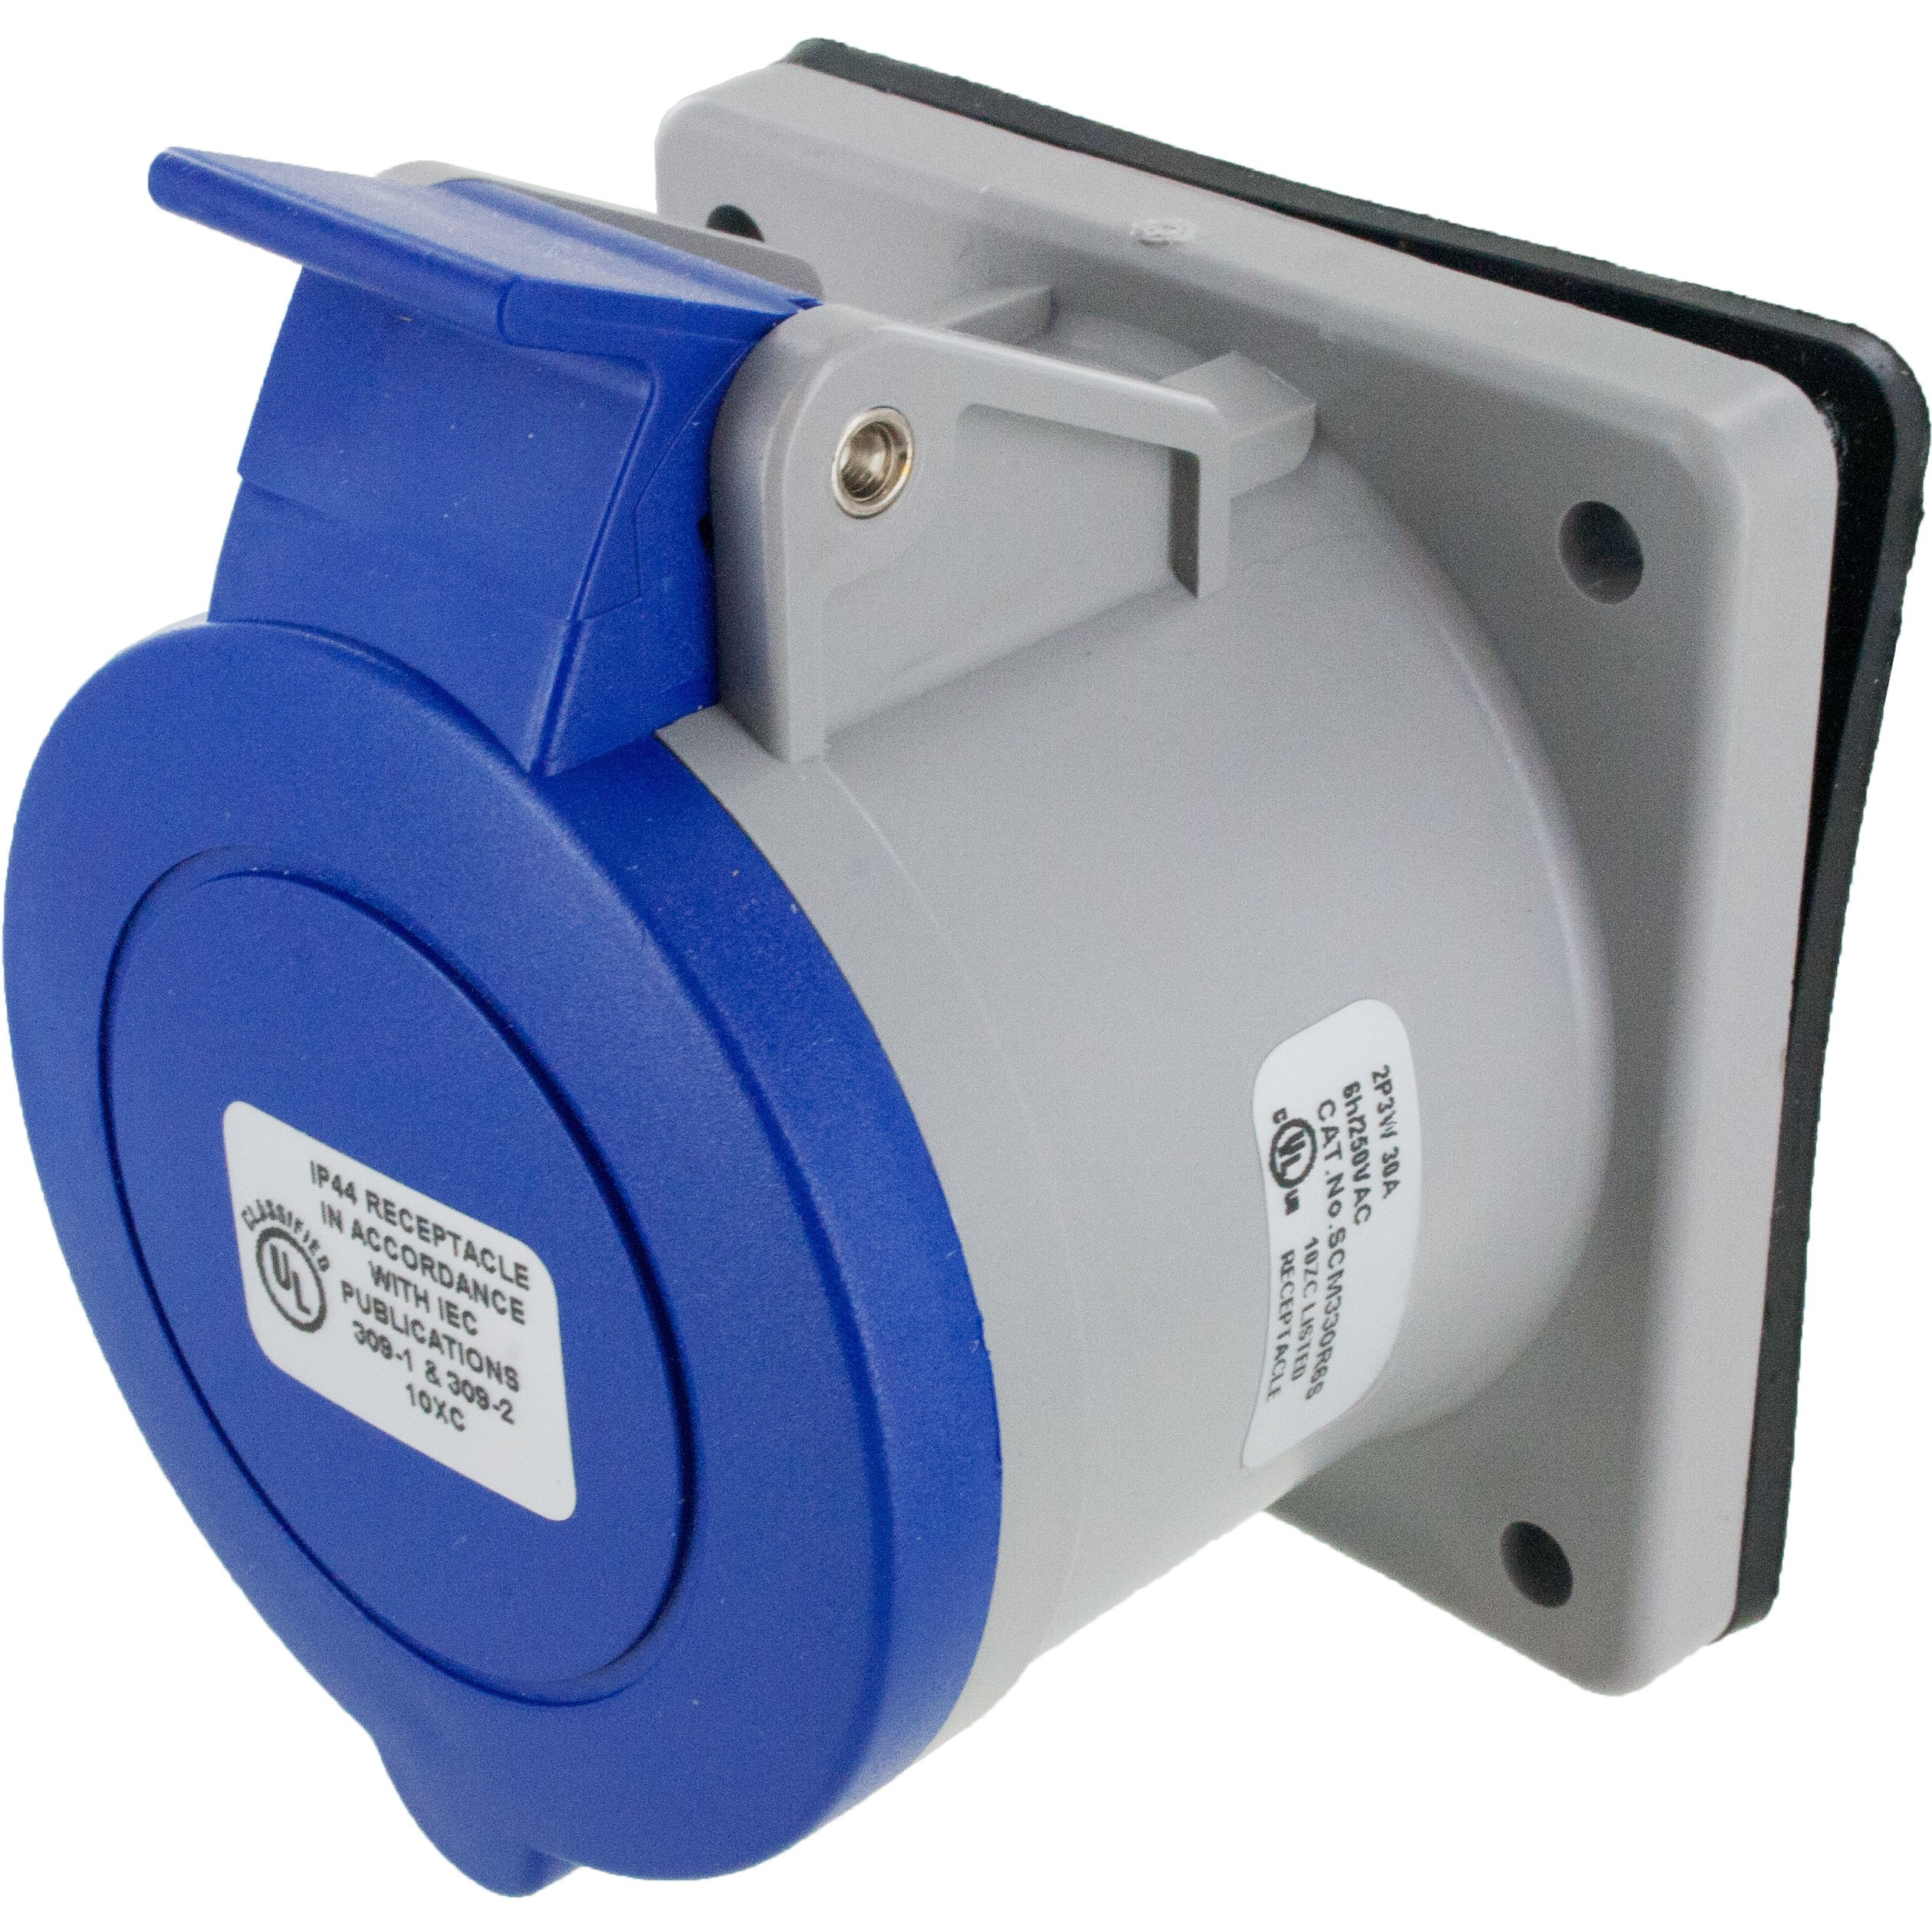 330R6S Pin And Sleeve Receptacle 30 Amp 2 Pole 3 Wire